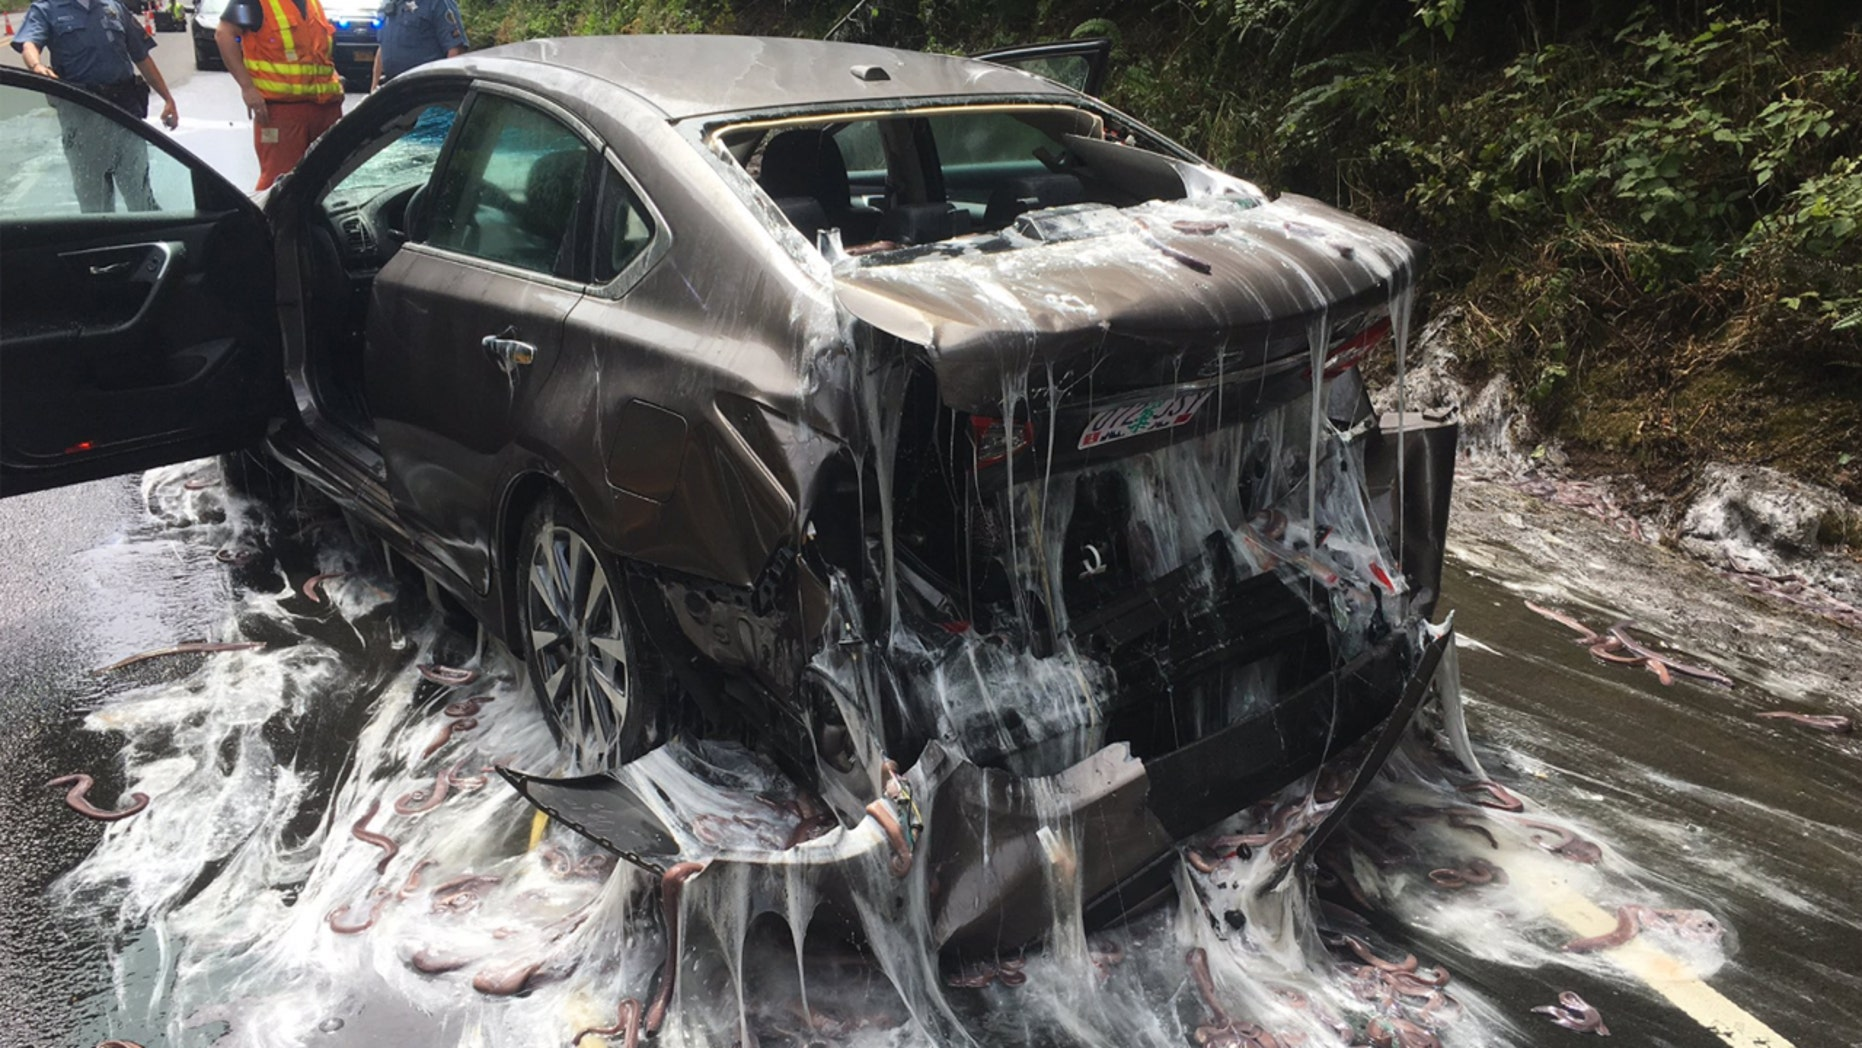 A truck made a slippery mess on an Oregon highway.